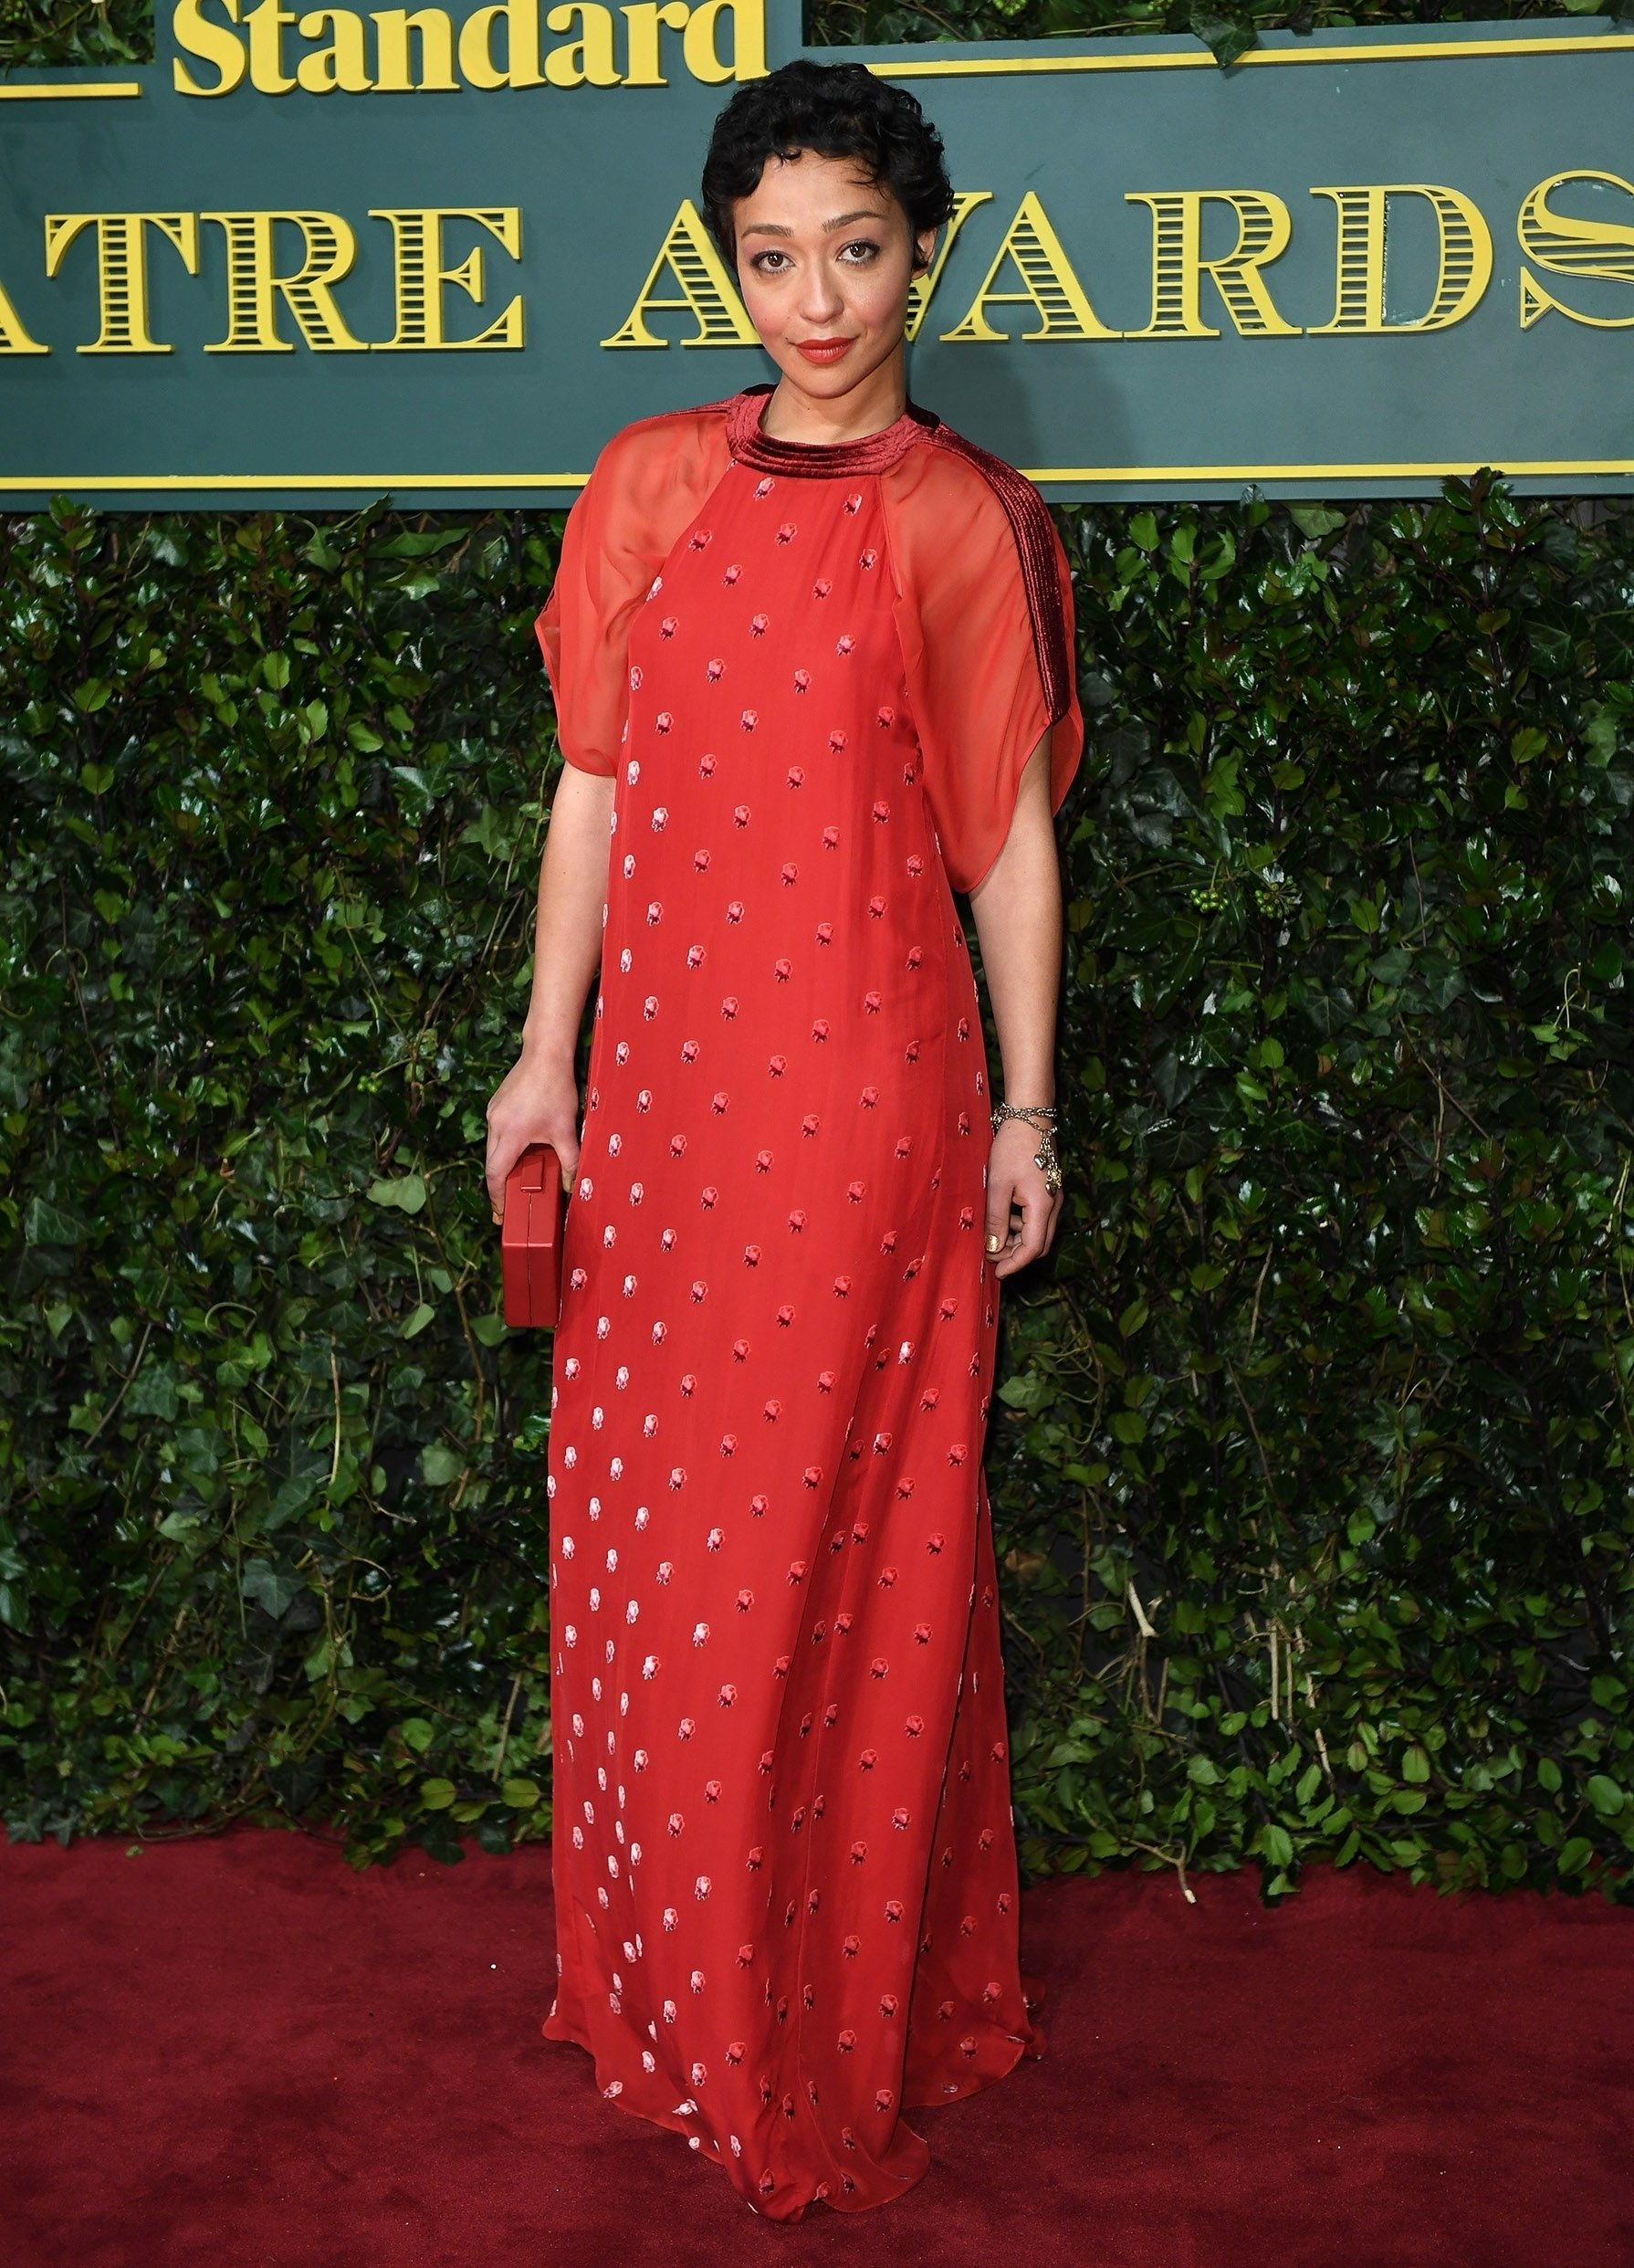 London, UNITED KINGDOM  - Celebrities attend the London Evening Standard Theatre Awards at Theatre Royal in London, England.  Pictured: Ruth Negga  BACKGRID UK 3 DECEMBER 2017, Image: 356827570, License: Rights-managed, Restrictions: , Model Release: no, Credit line: Profimedia, Xposurephotos